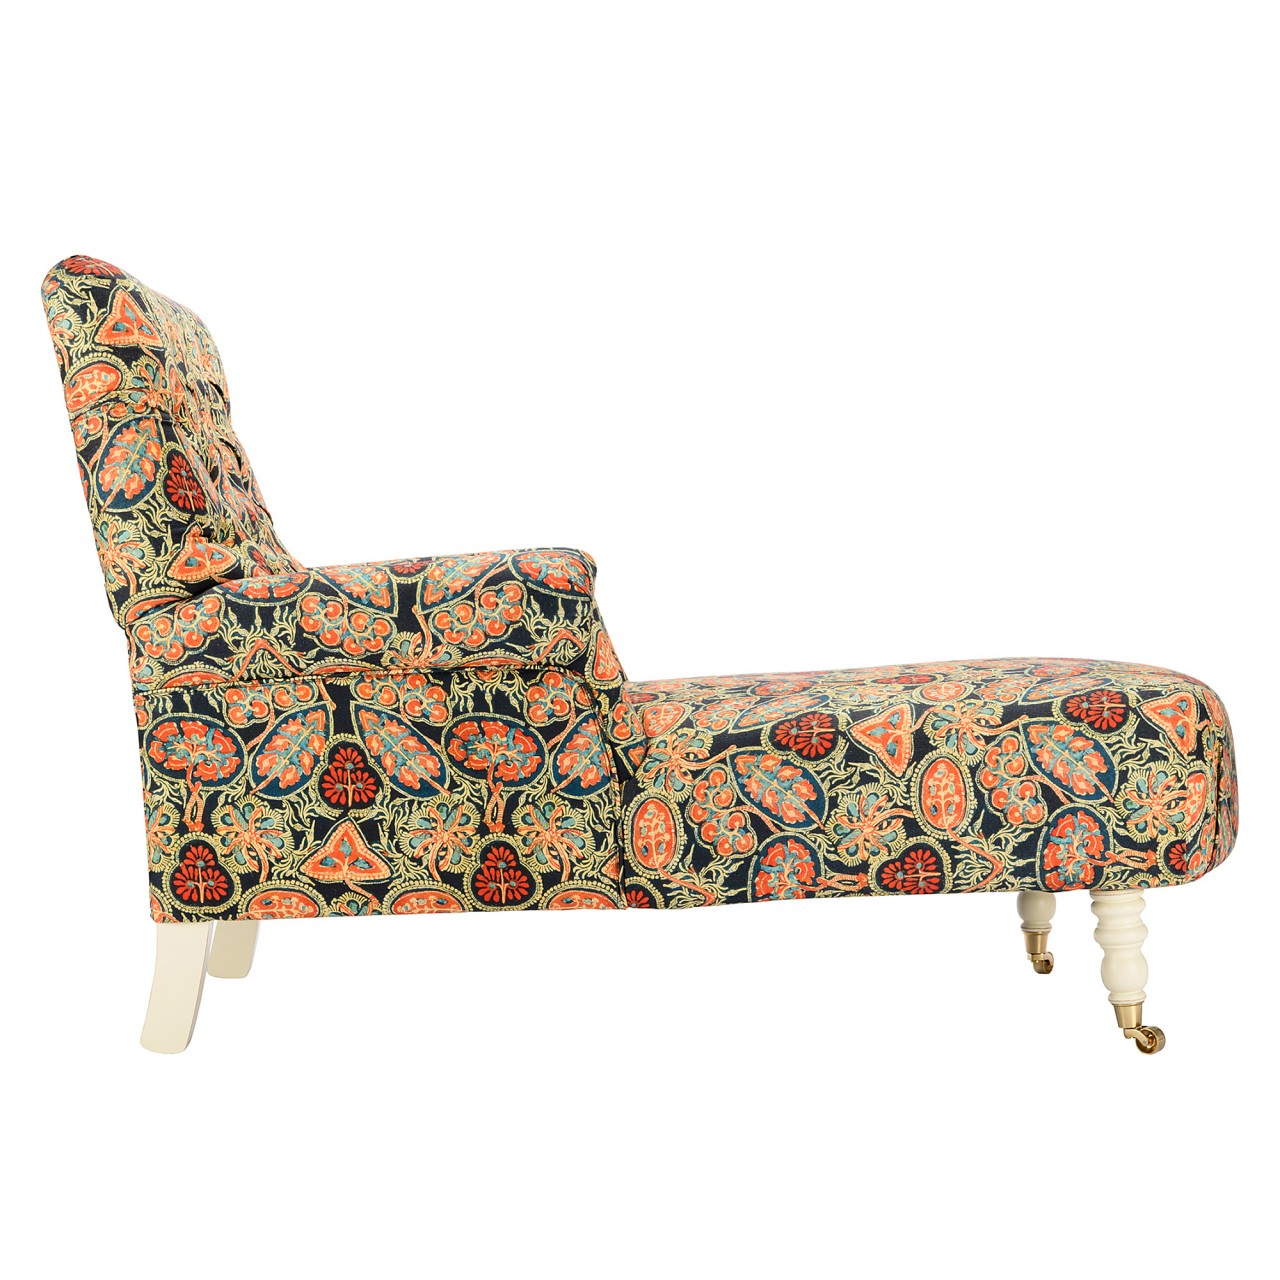 MADISON CHAISE - HEIRLOOM Linen